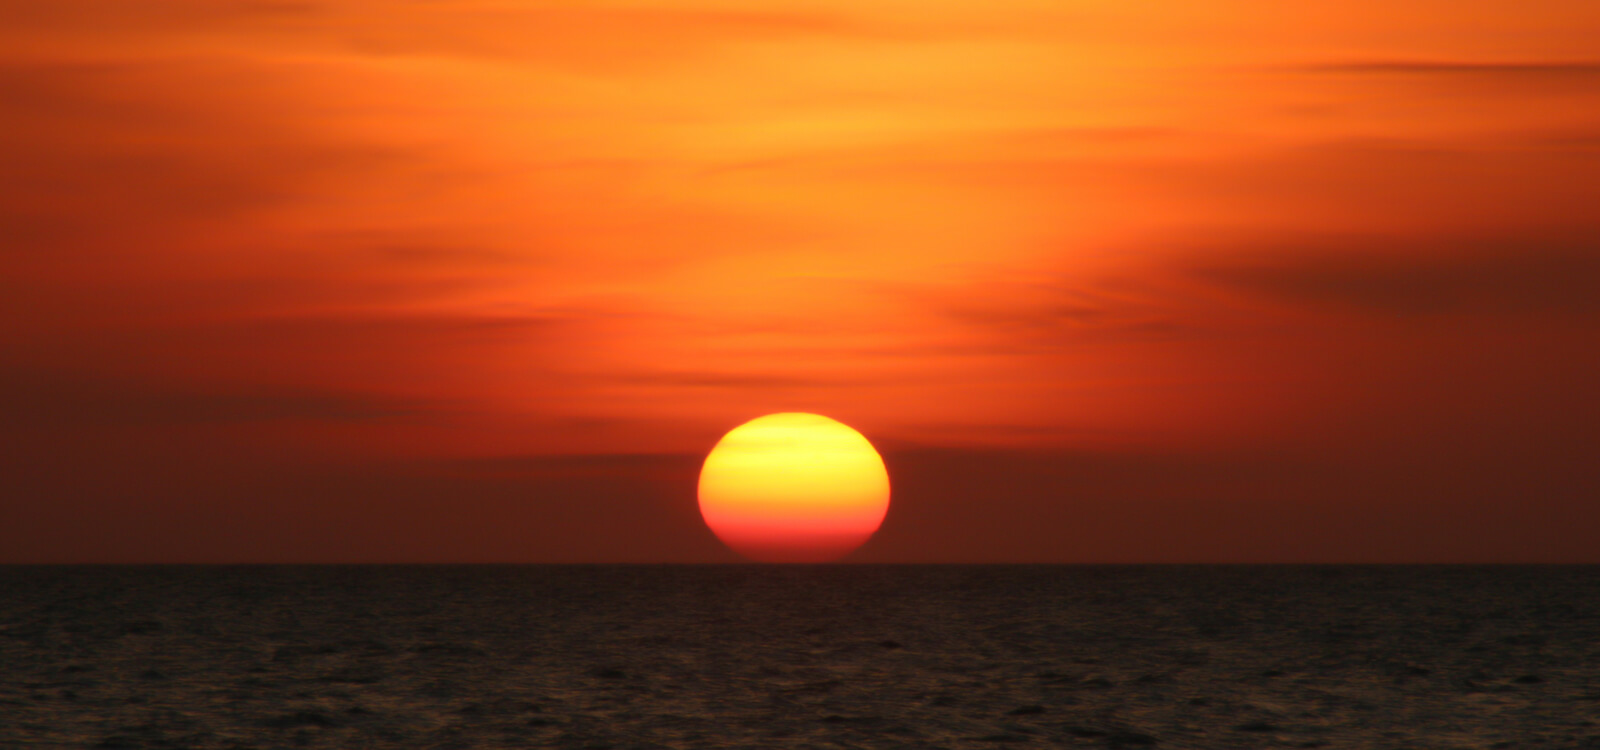 MustDo.com | Sunset into the Gulf of Mexico Florida, USA. Photo by Mary Carol Fitzgerald.